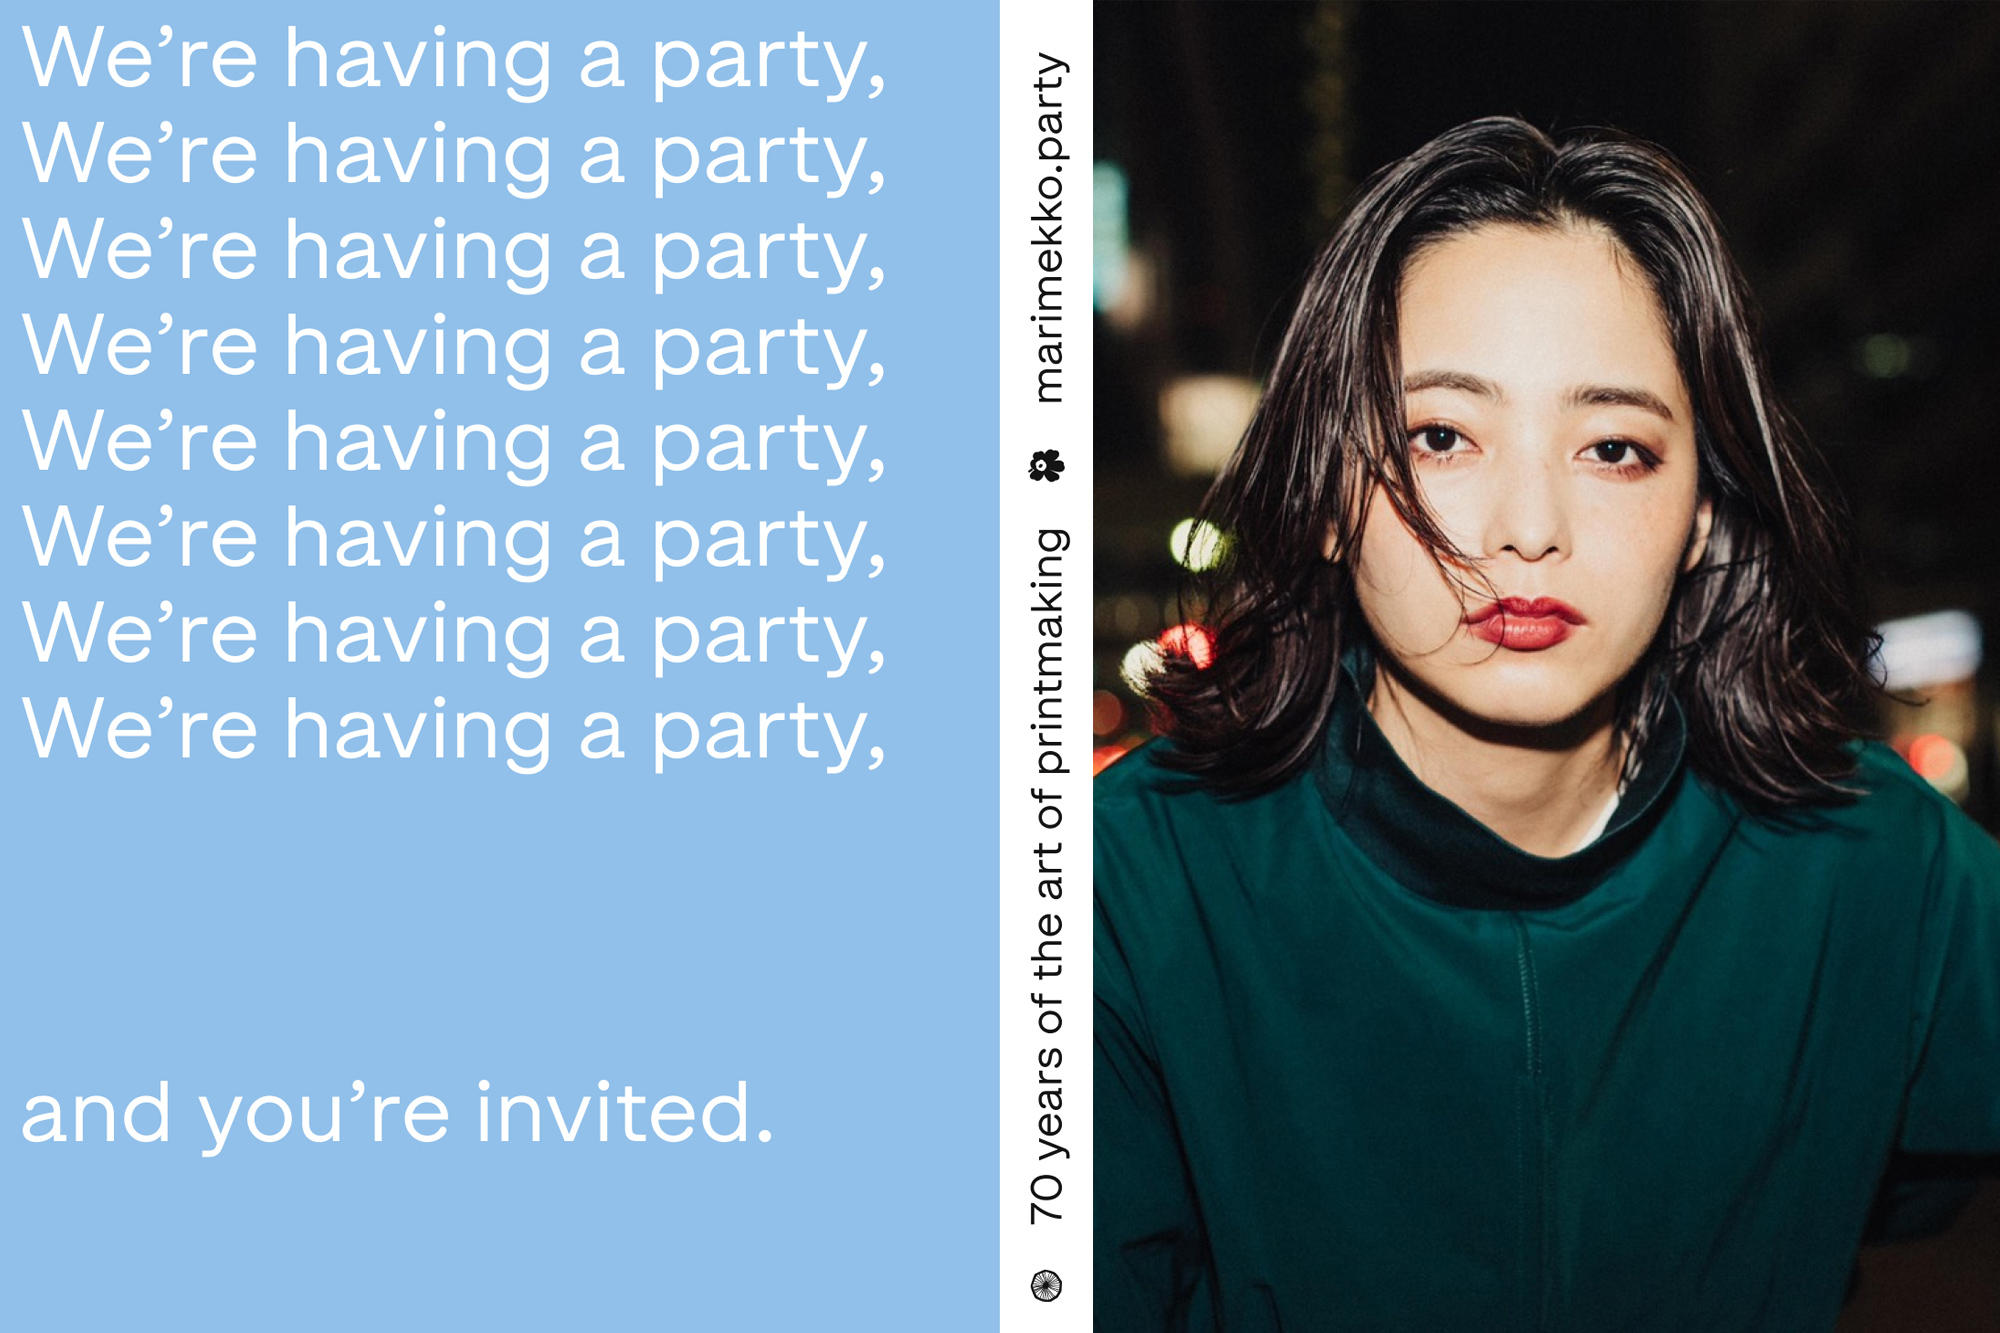 5.21 We're having a party and you're invited!